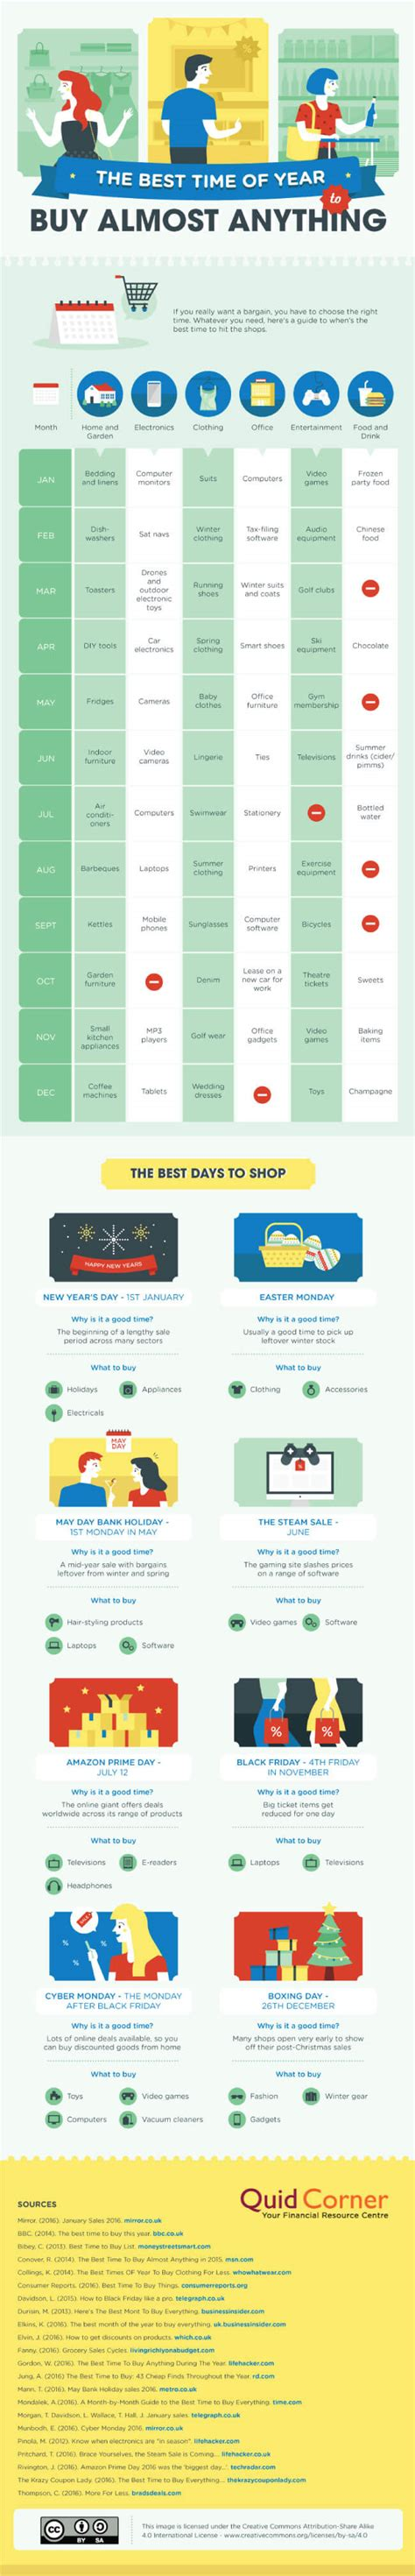 best time to buy the best time to buy everything for less by month and by